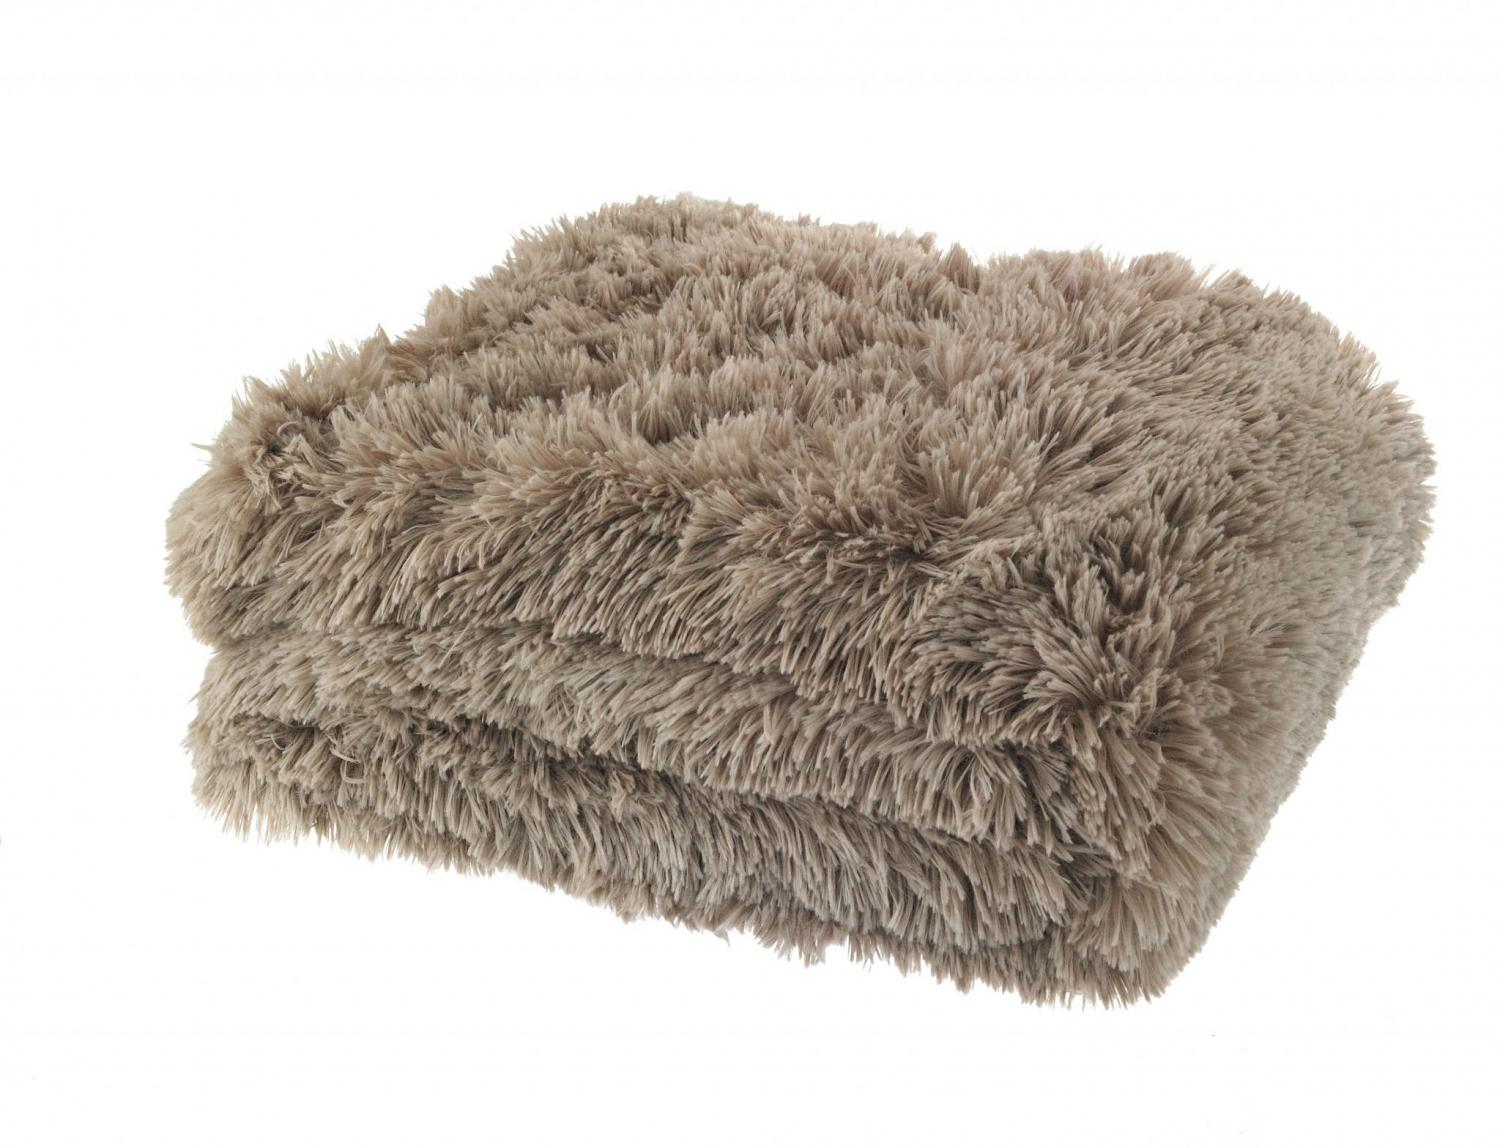 Taupe Cuddly Blanket